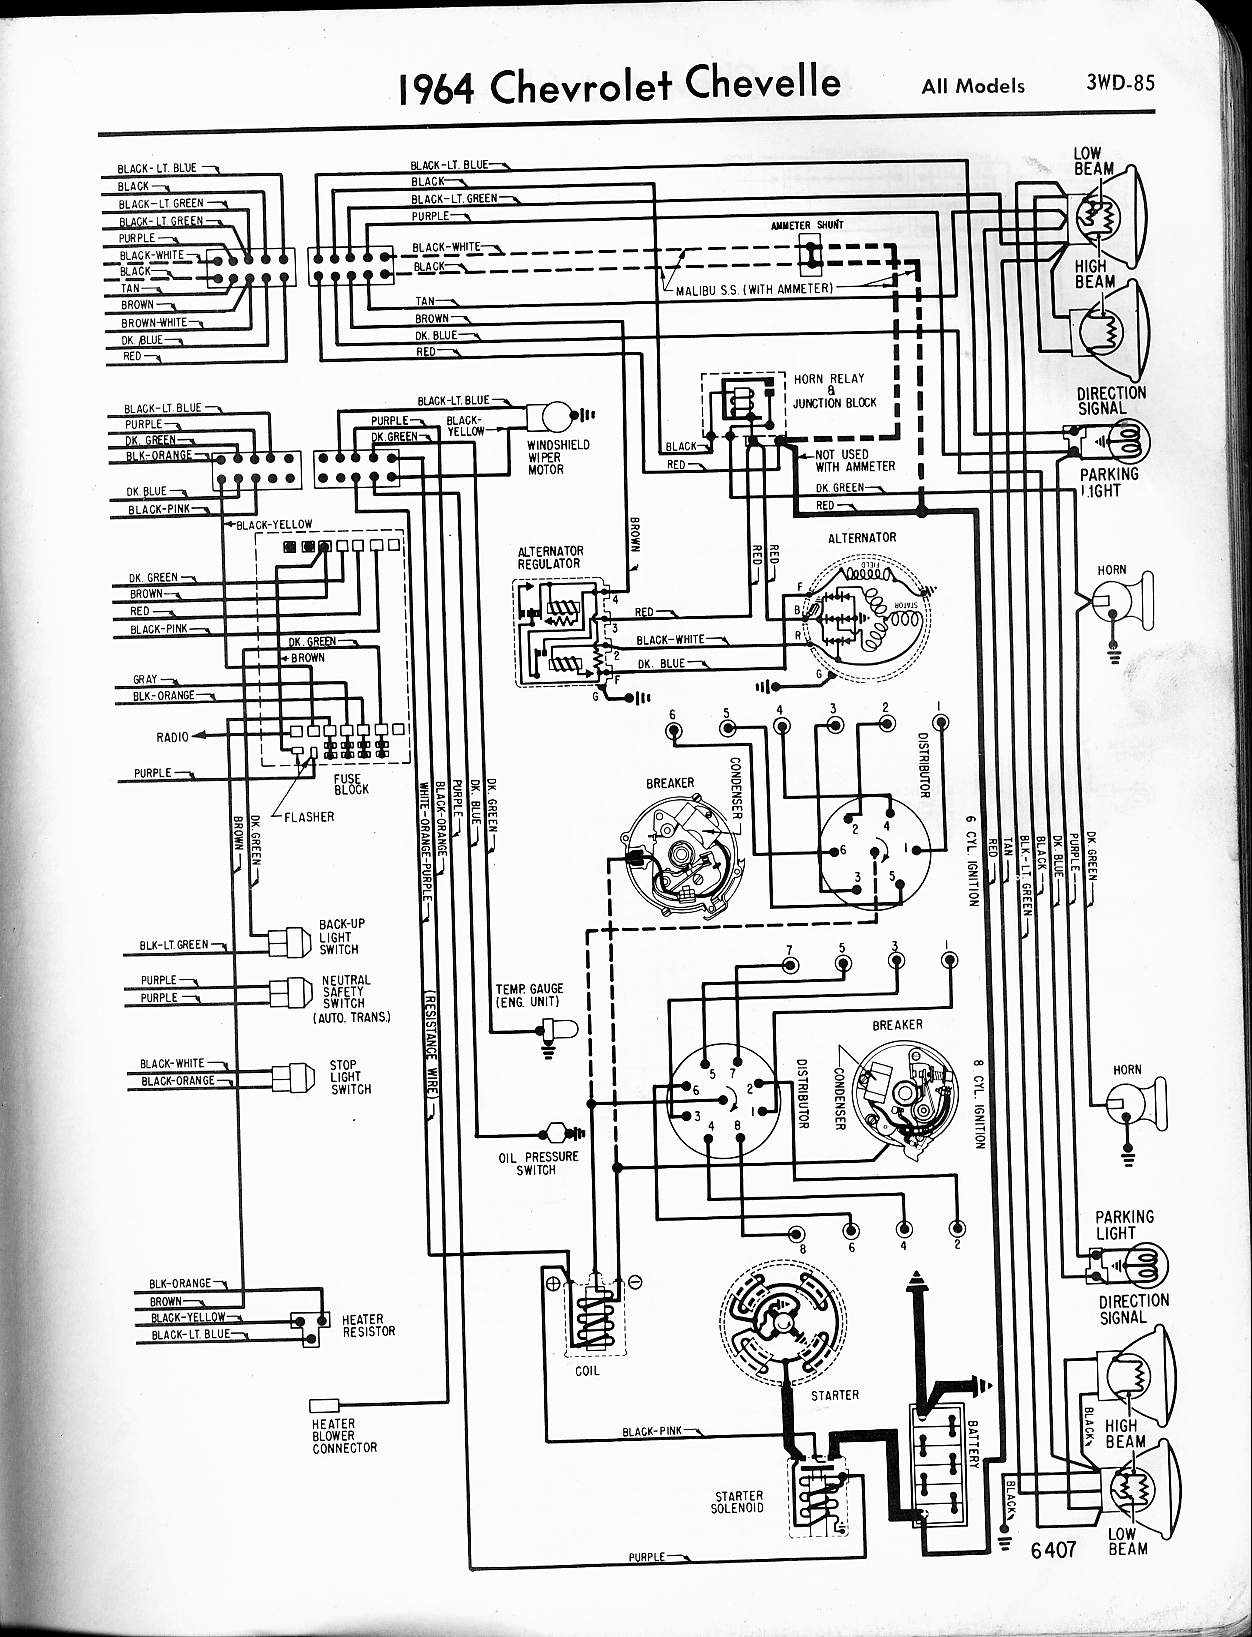 65 Gto Turn Signal Wiring Diagram Library 1965 Mustang Light Ignition Coil Chevelle Opinions About Tail 1968 Camaro Chevy